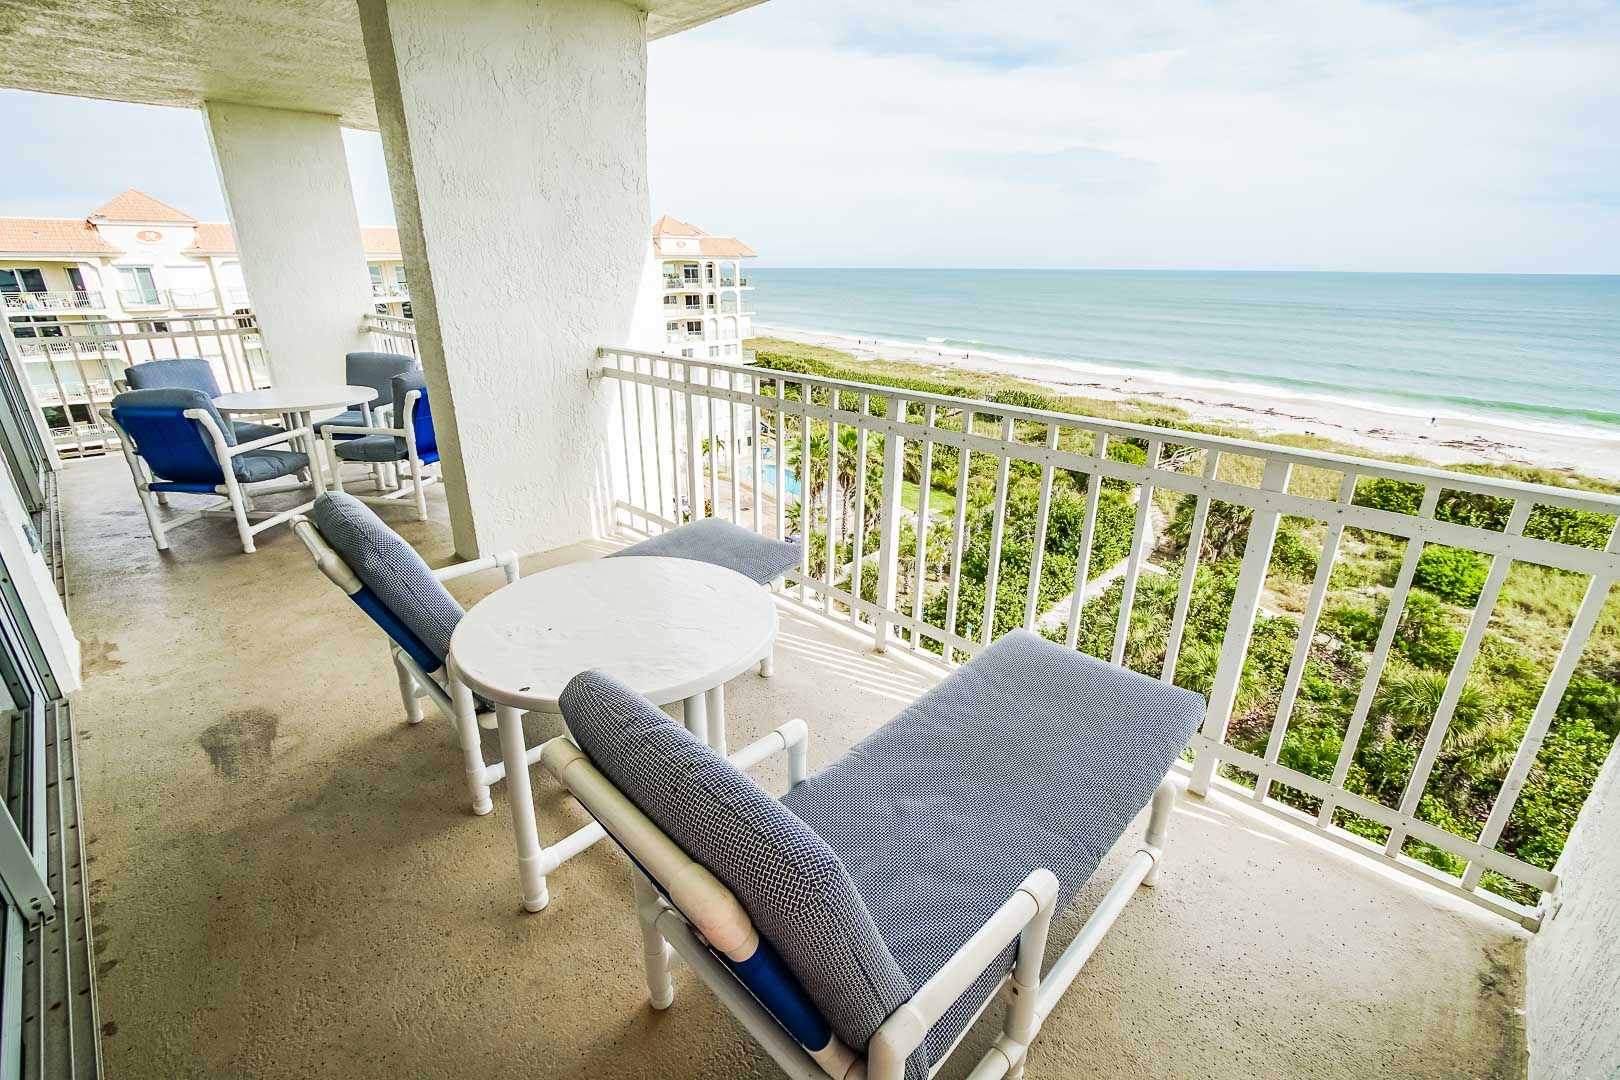 A balcony ocean front at VRI's Discovery Beach Resort in Cocoa Beach, Florida.